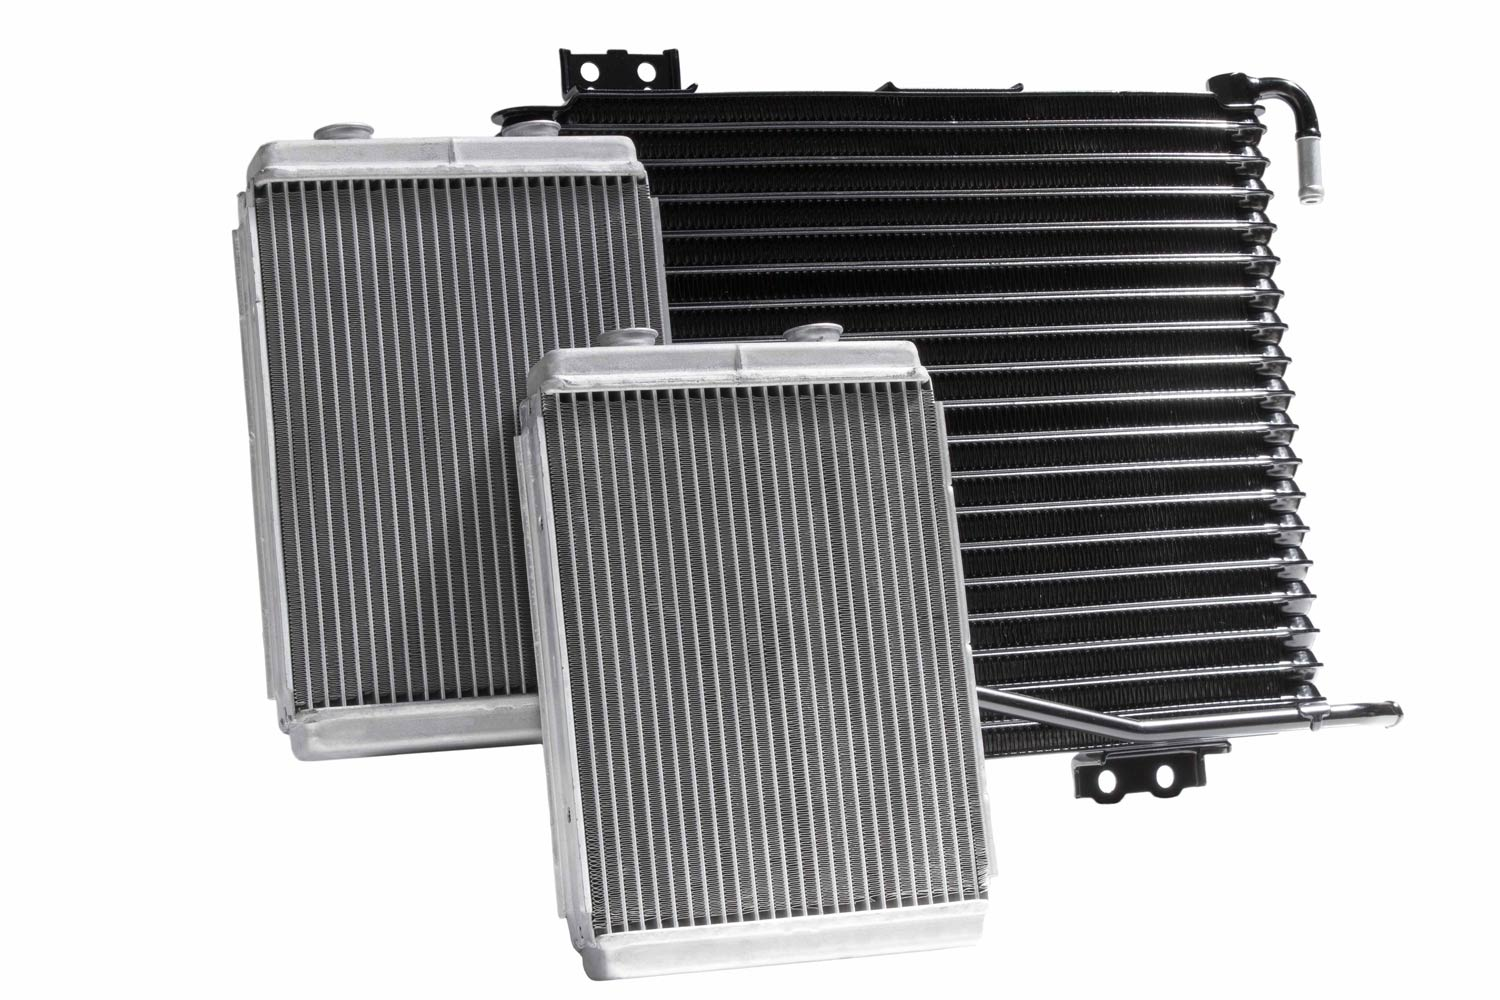 Three Vehicle Radiators sat side by side